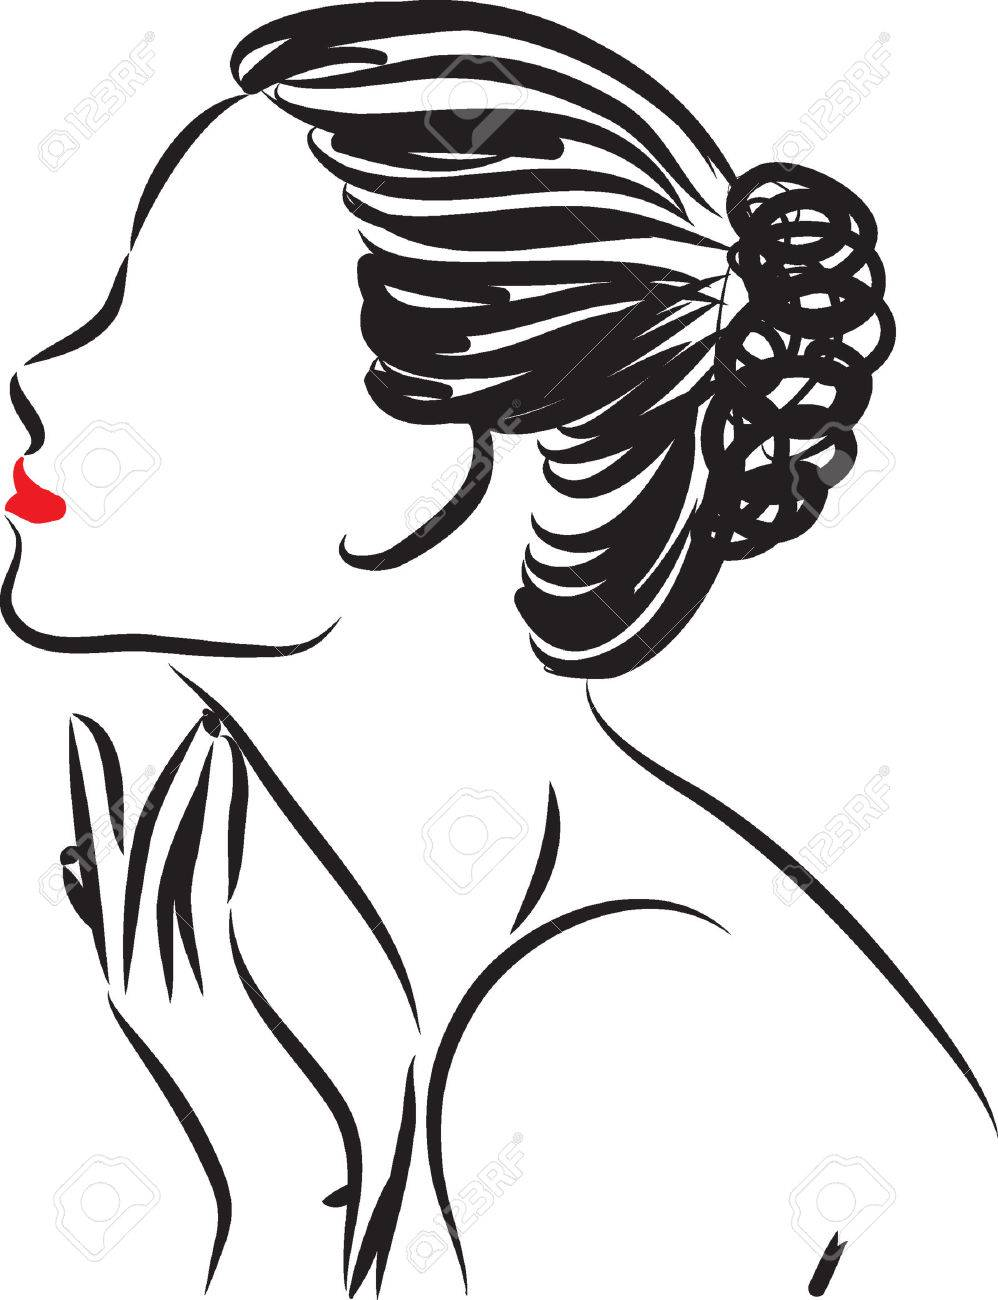 Skin clipart black and white vector freeuse stock Skin clipart black and white 8 » Clipart Station vector freeuse stock